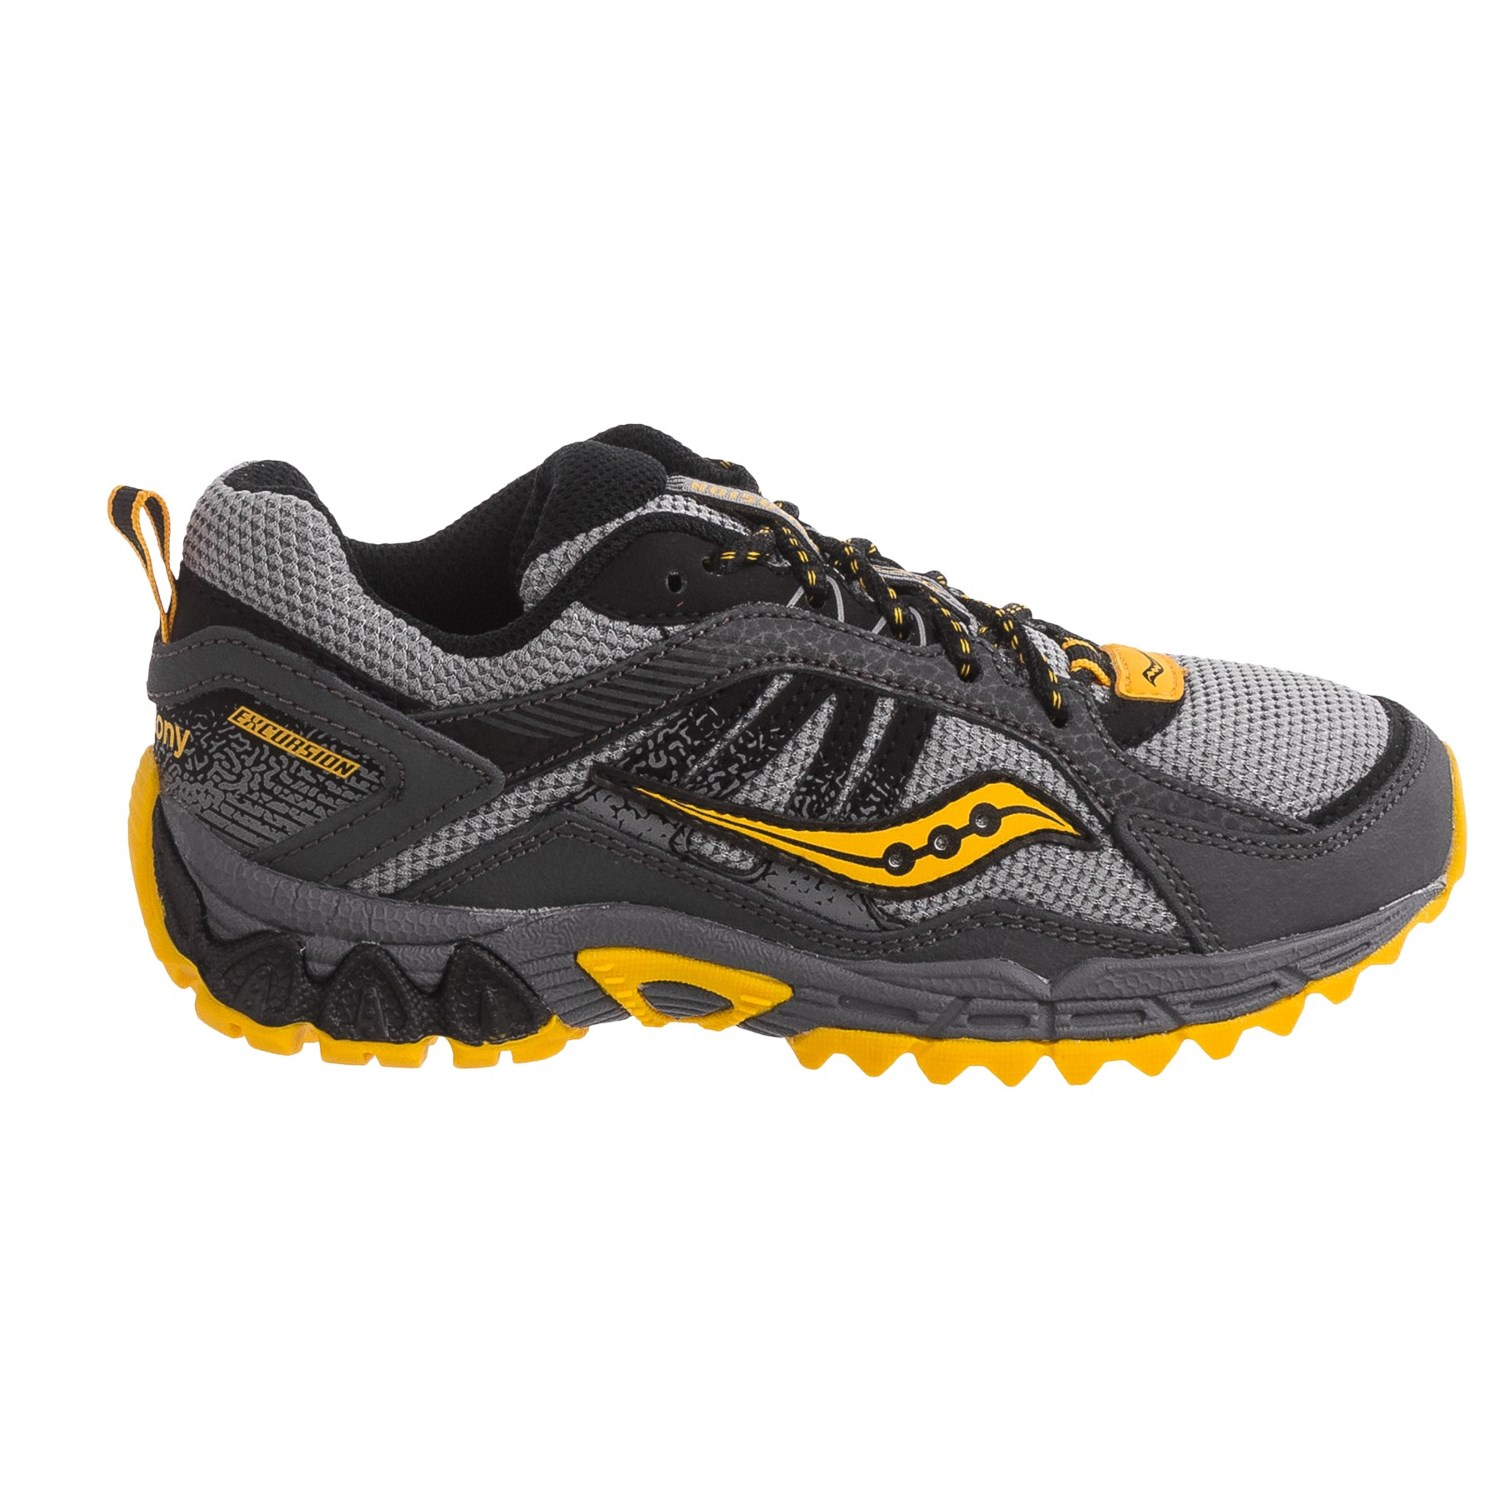 Saucony Running Shoes For Toddlers